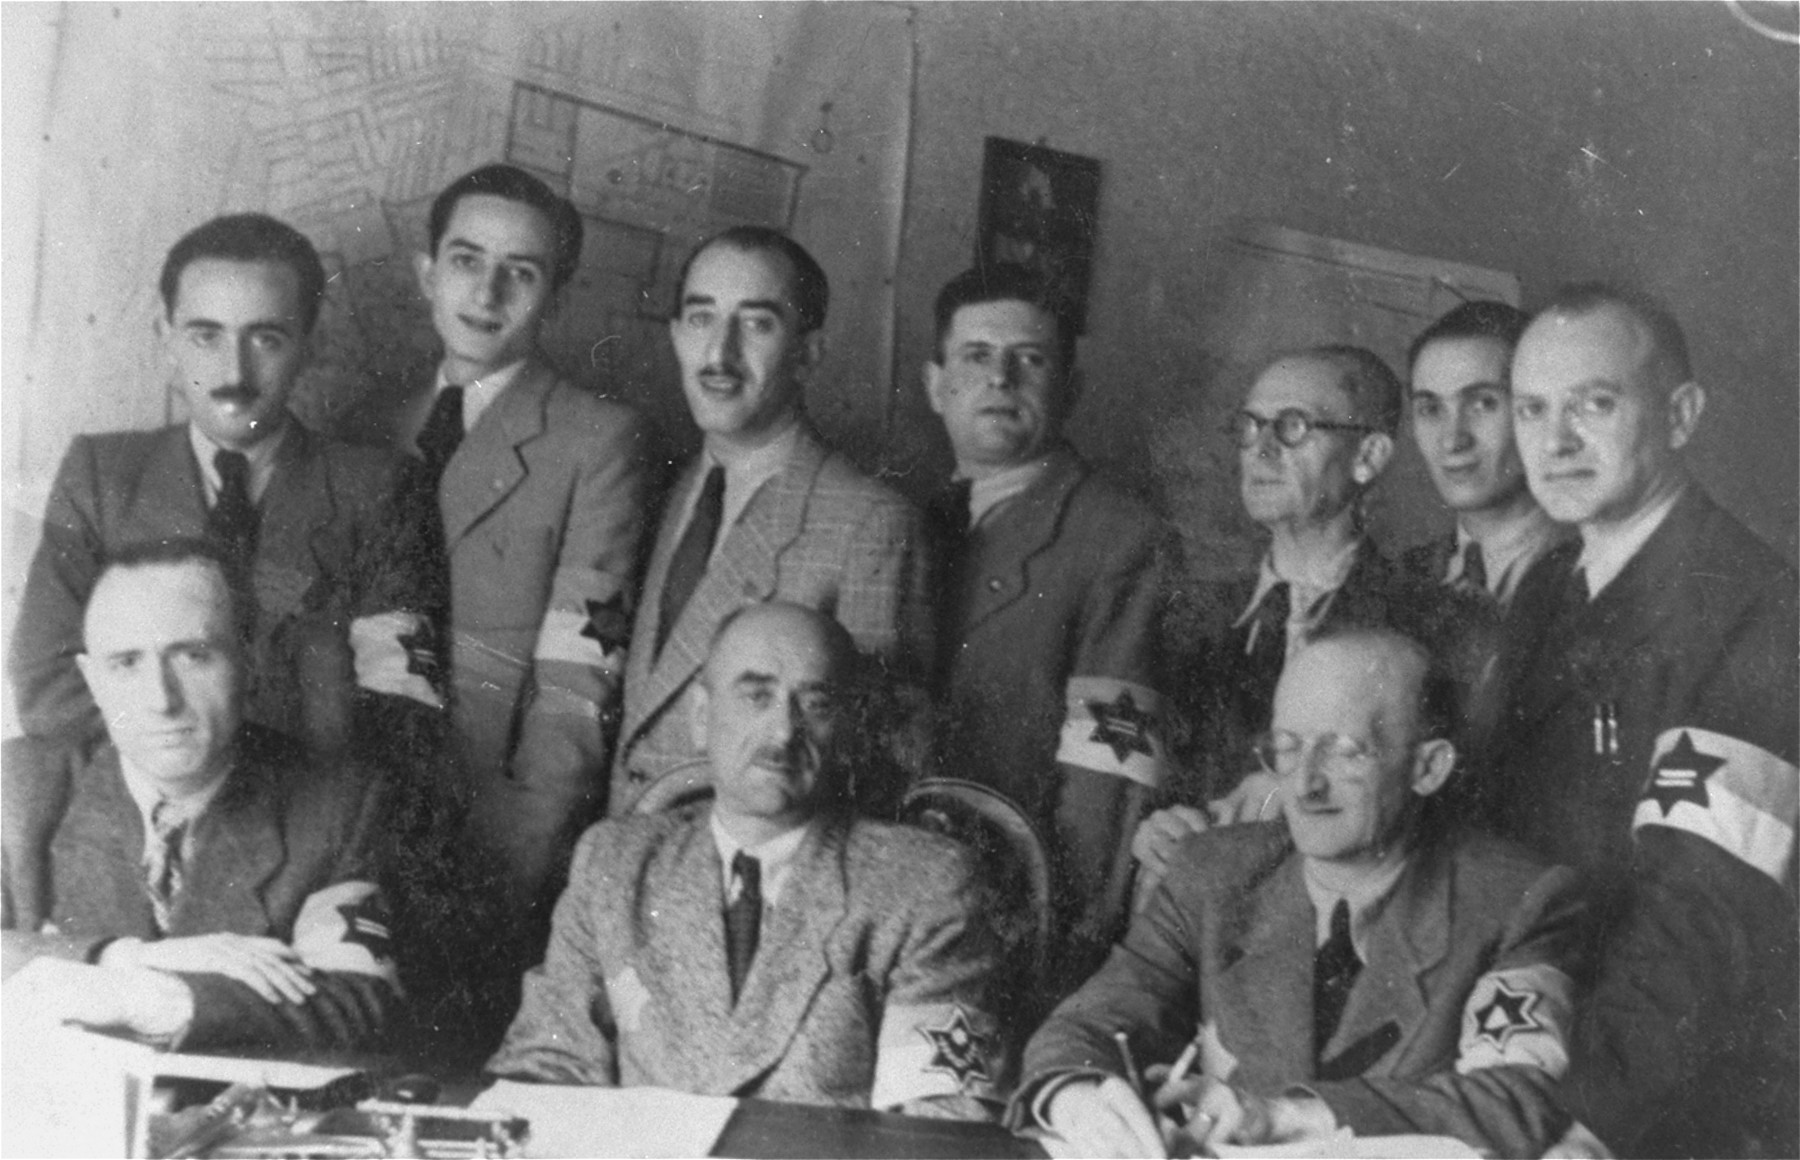 Group portrait of members of the Lodz ghetto police.     Among those pictured is Leon Rozenblat, chief of the police (seated in the middle), Dr. Piotrkowski (seated on the left) and Julek Grosbart (seated on the right).  Hermann Chimowicz is in the middle of the second row.